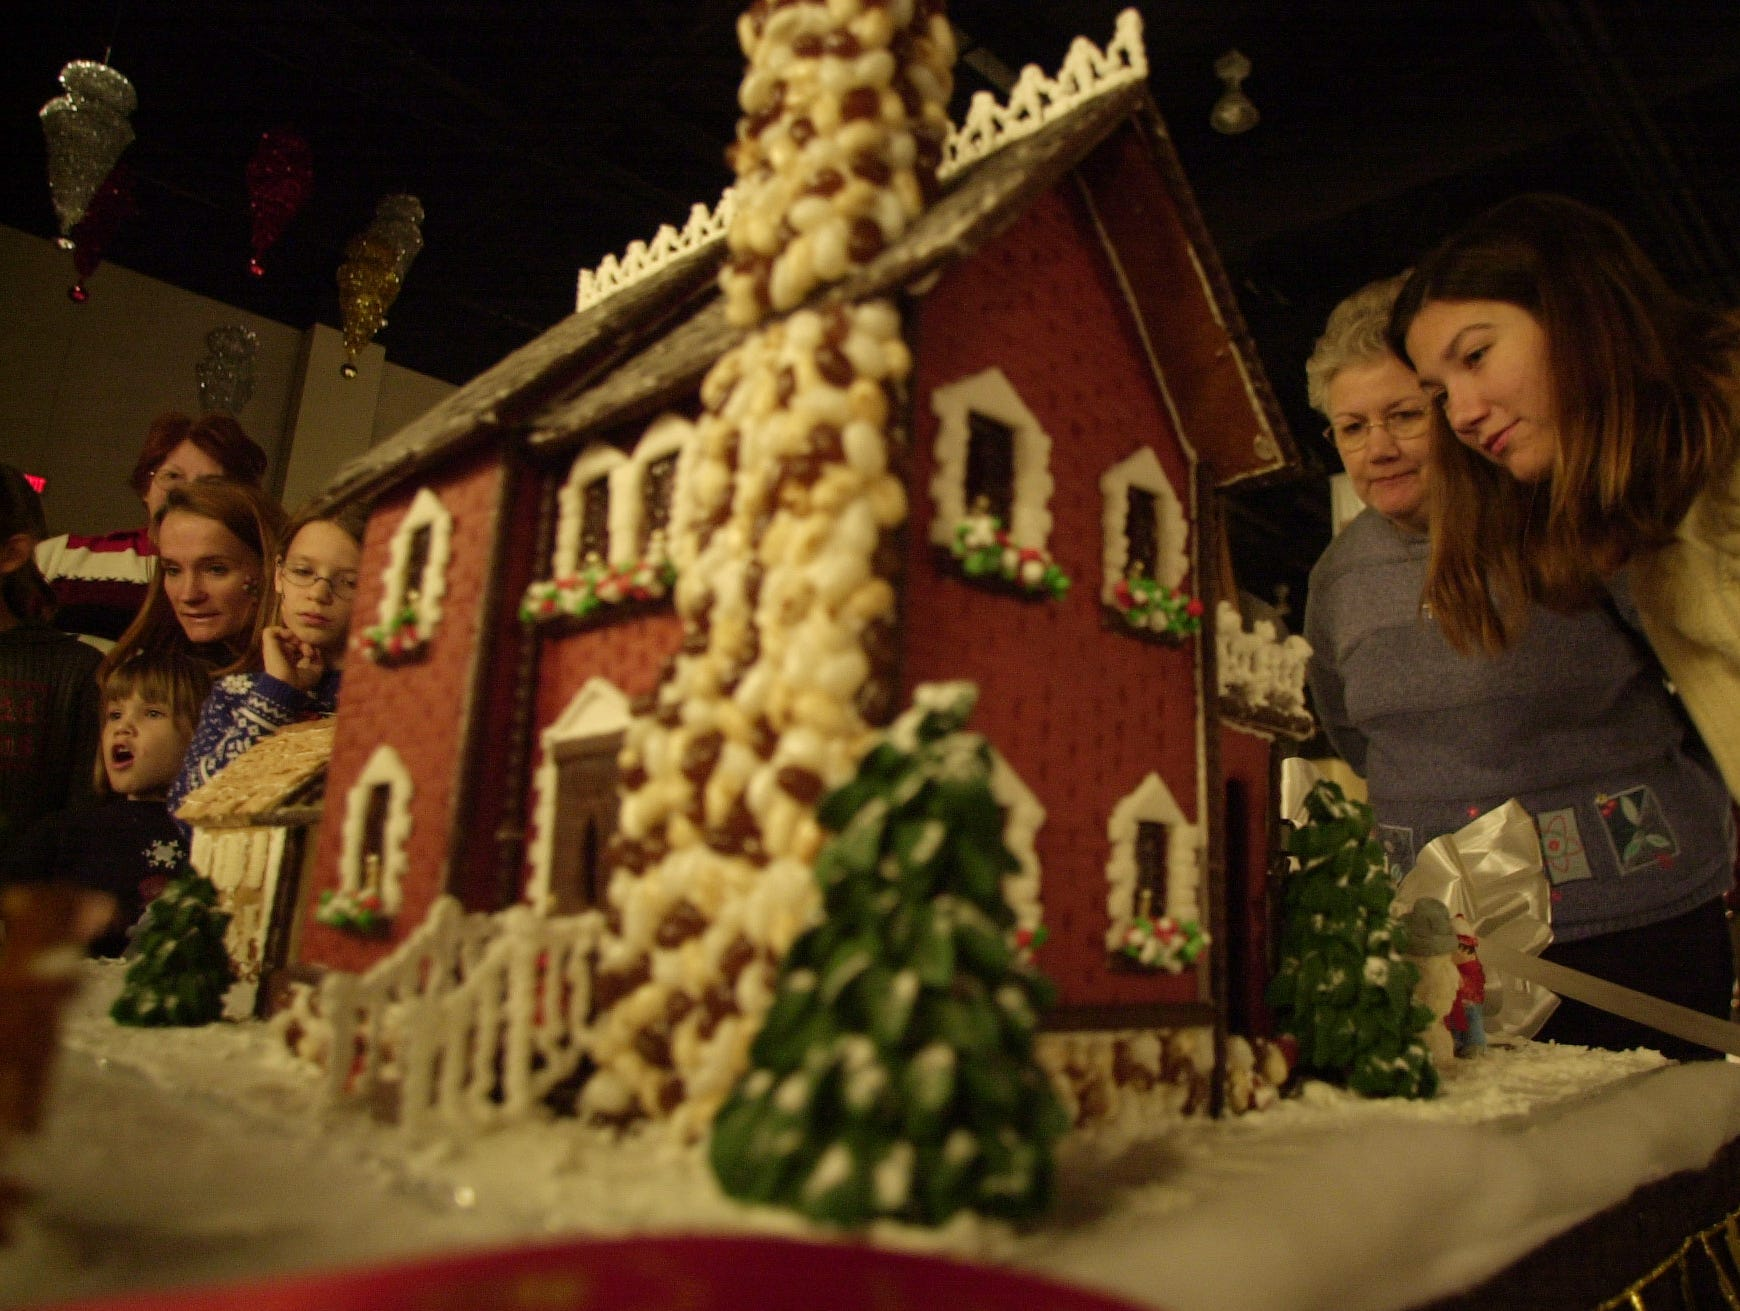 Katie Gillespie, far right, and Cathy Taylor, second from right, check out a gingerbread house made by Greenback High School students  during the 2004 Fantasy of Trees at the Knoxville Convention Center Saturday.